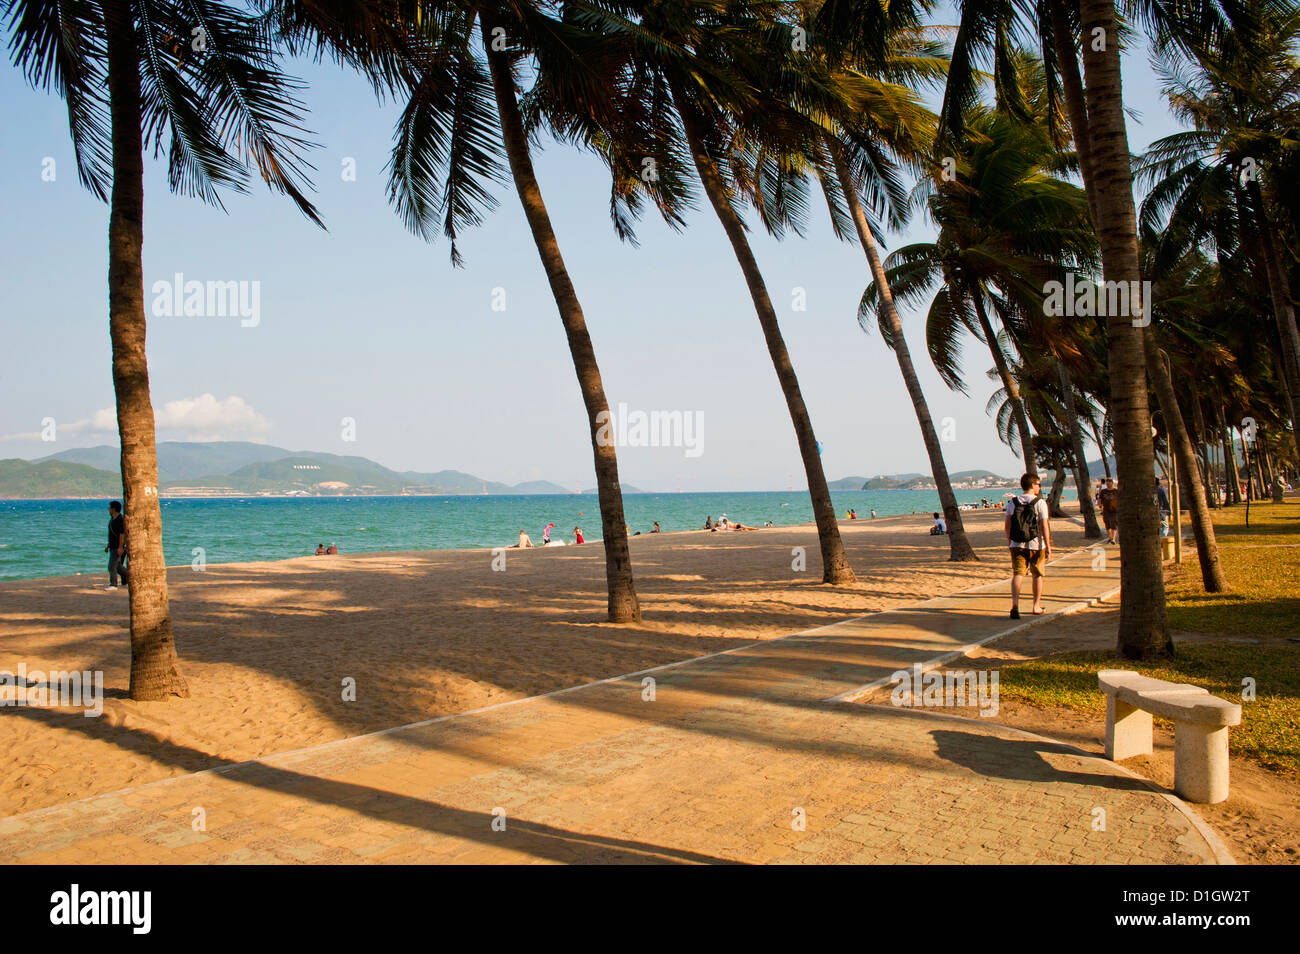 Palm trees at beautiful Nha Trang beach, Vietnam, Indochina, Southeast Asia, Asia - Stock Image